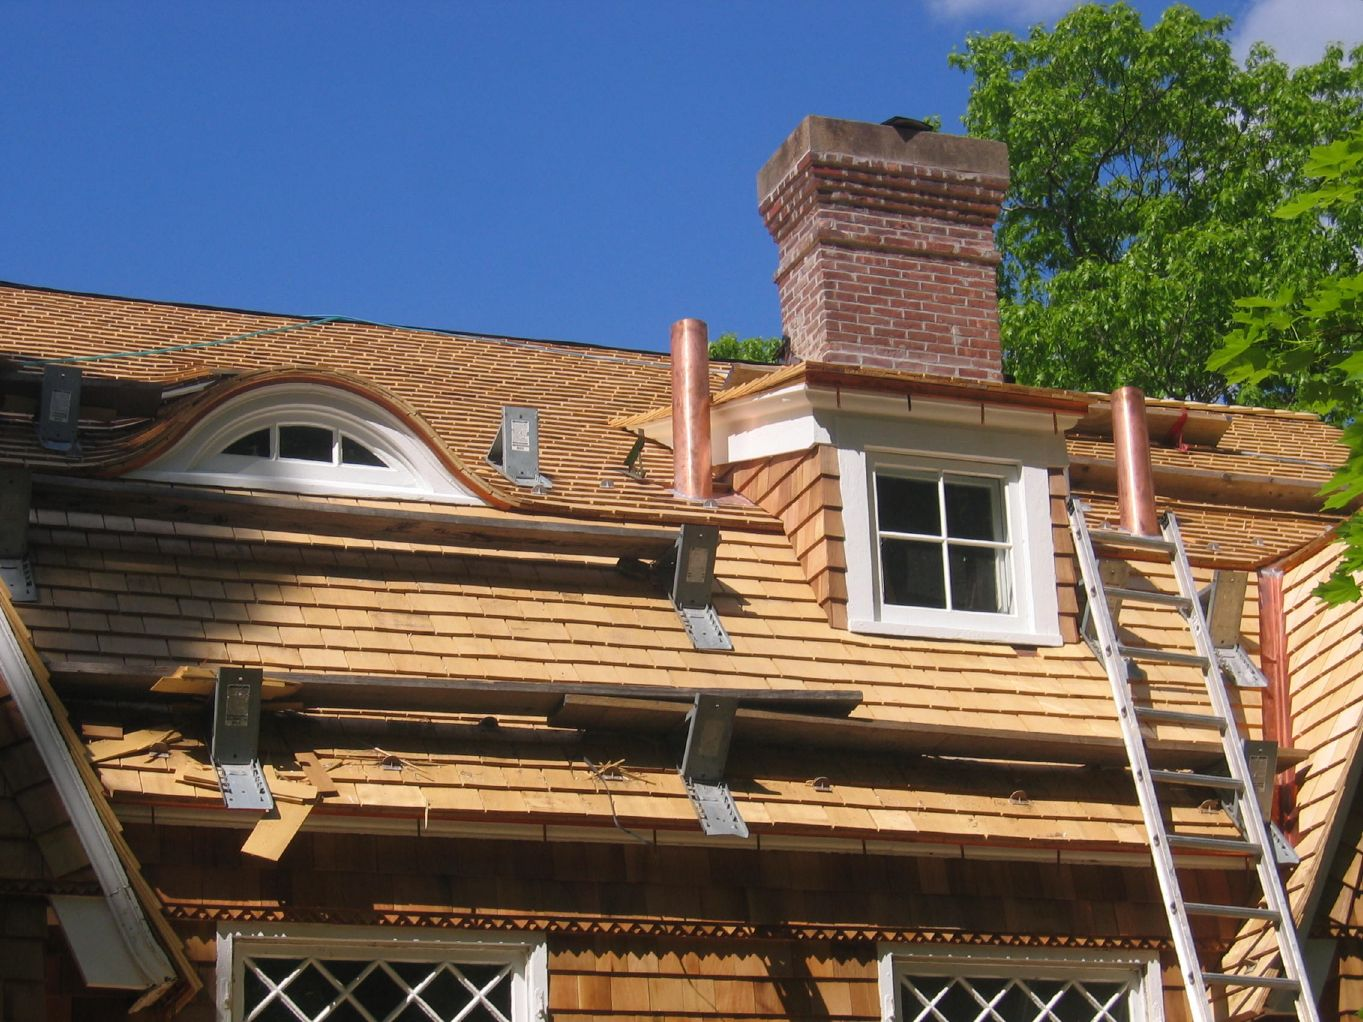 Cedar roofs - they look great but they're a maintenance nightmare!